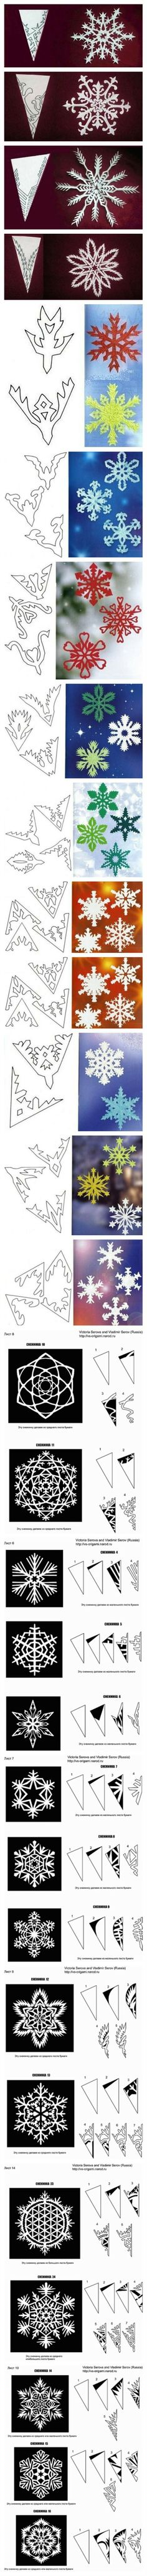 Snowflake patterns... wow!